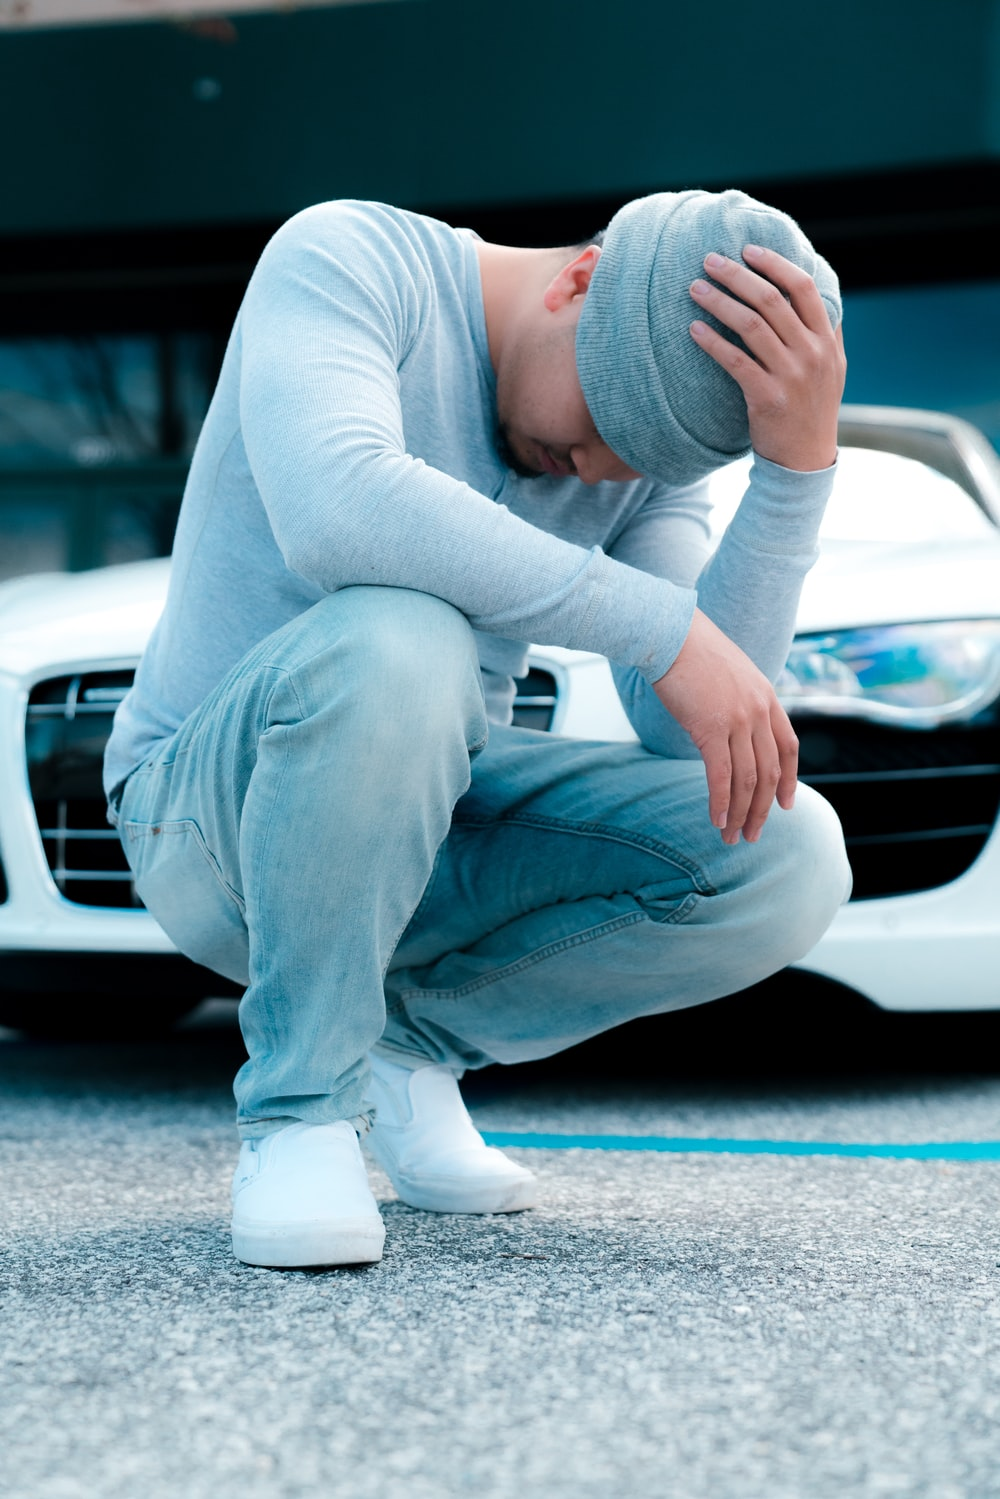 man wearing grey long-sleeved shirt sitting on ground while holding his knit cap